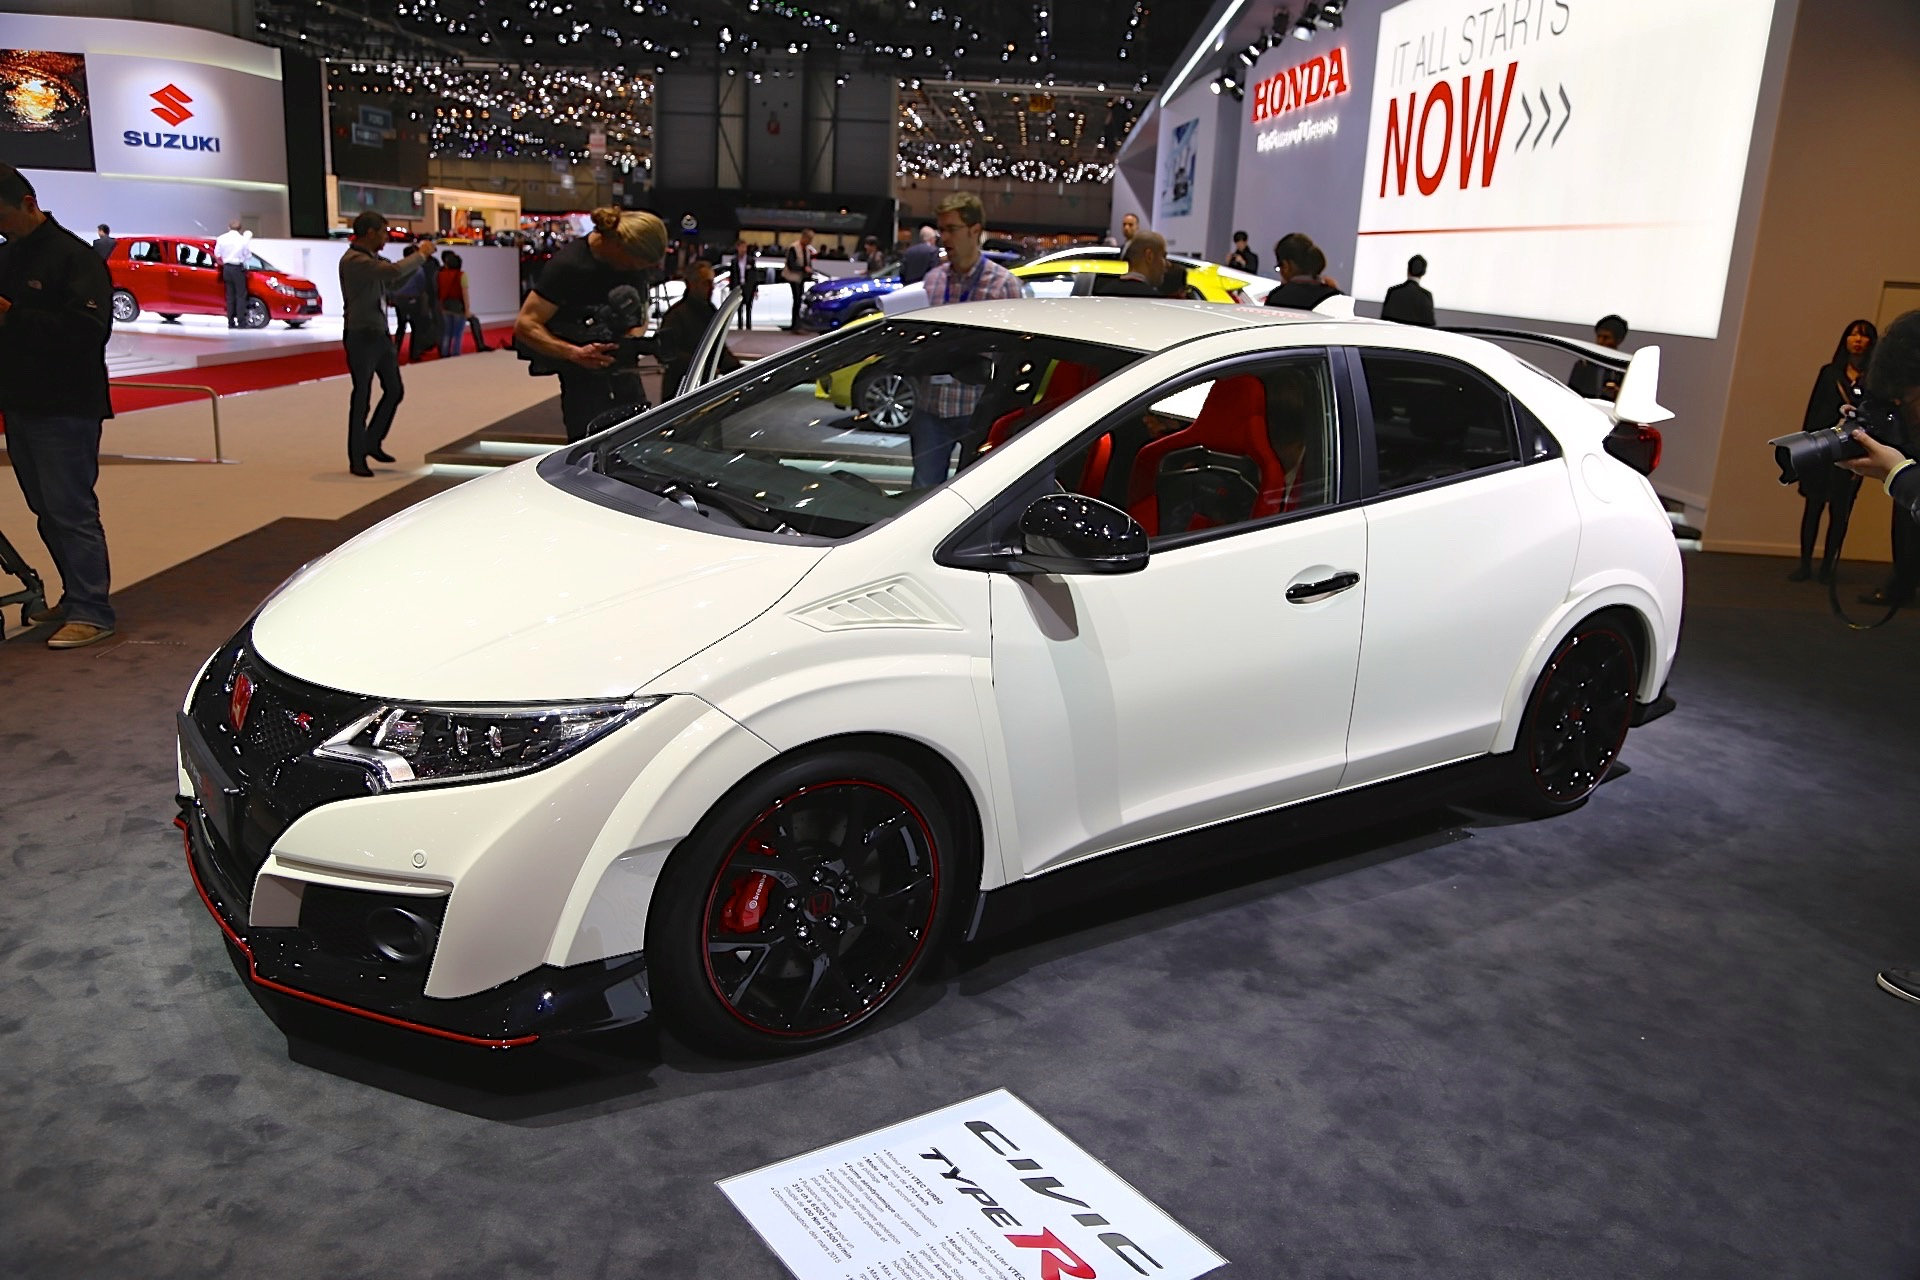 2015 honda civic type r 305 hp and 0 62 mph in 5 7 seconds. Black Bedroom Furniture Sets. Home Design Ideas